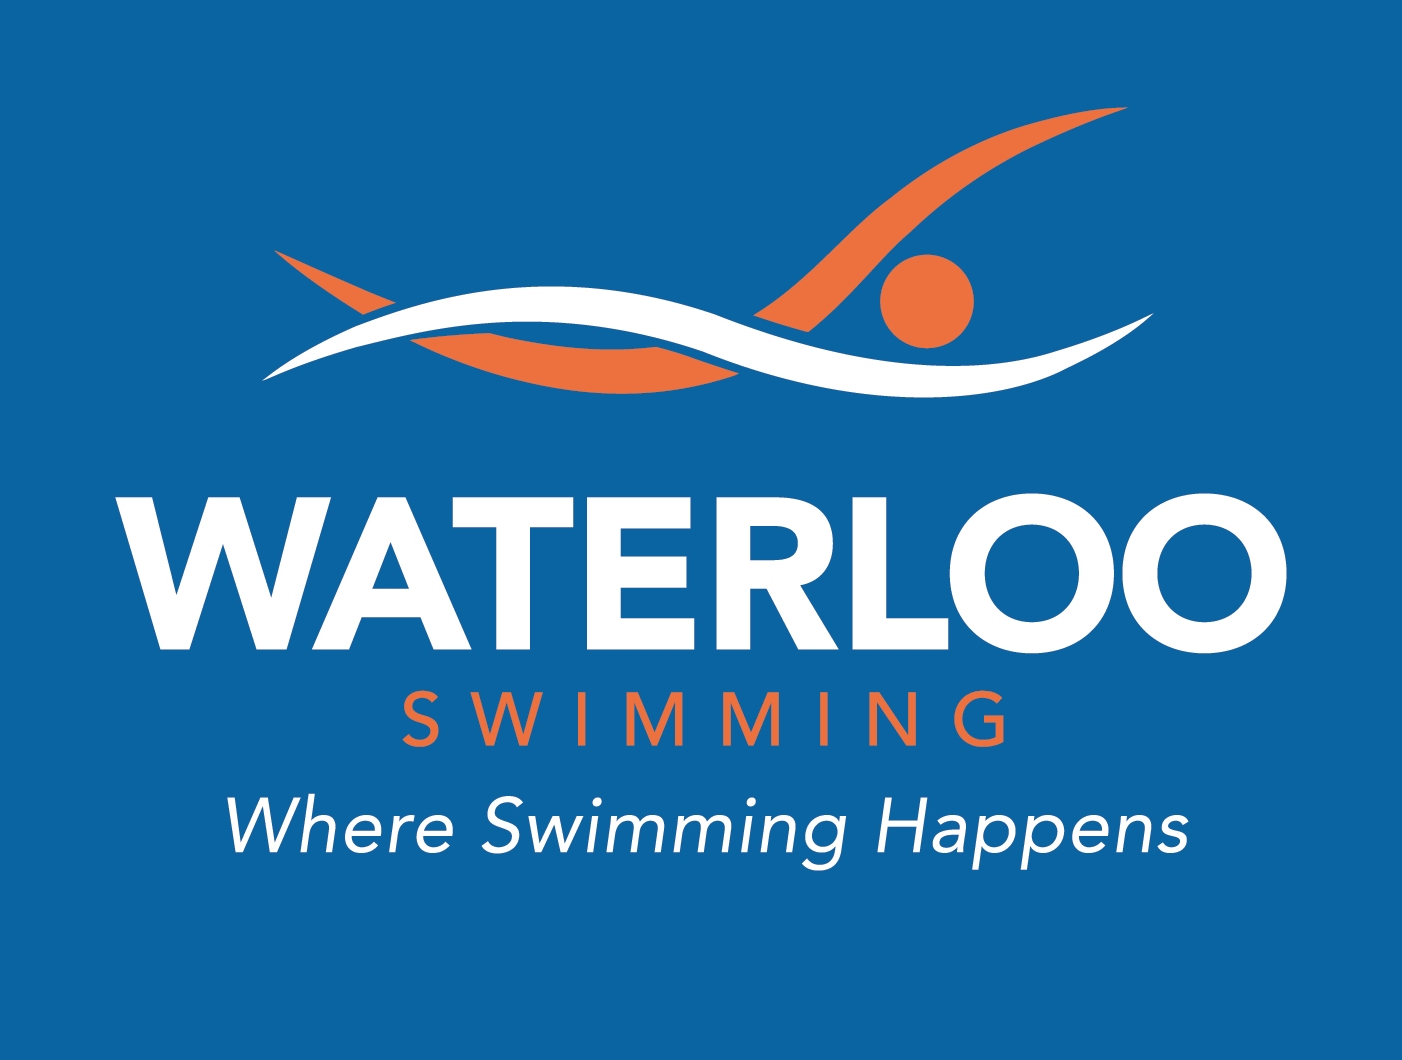 WaterlooSwimmingLogo.jpg